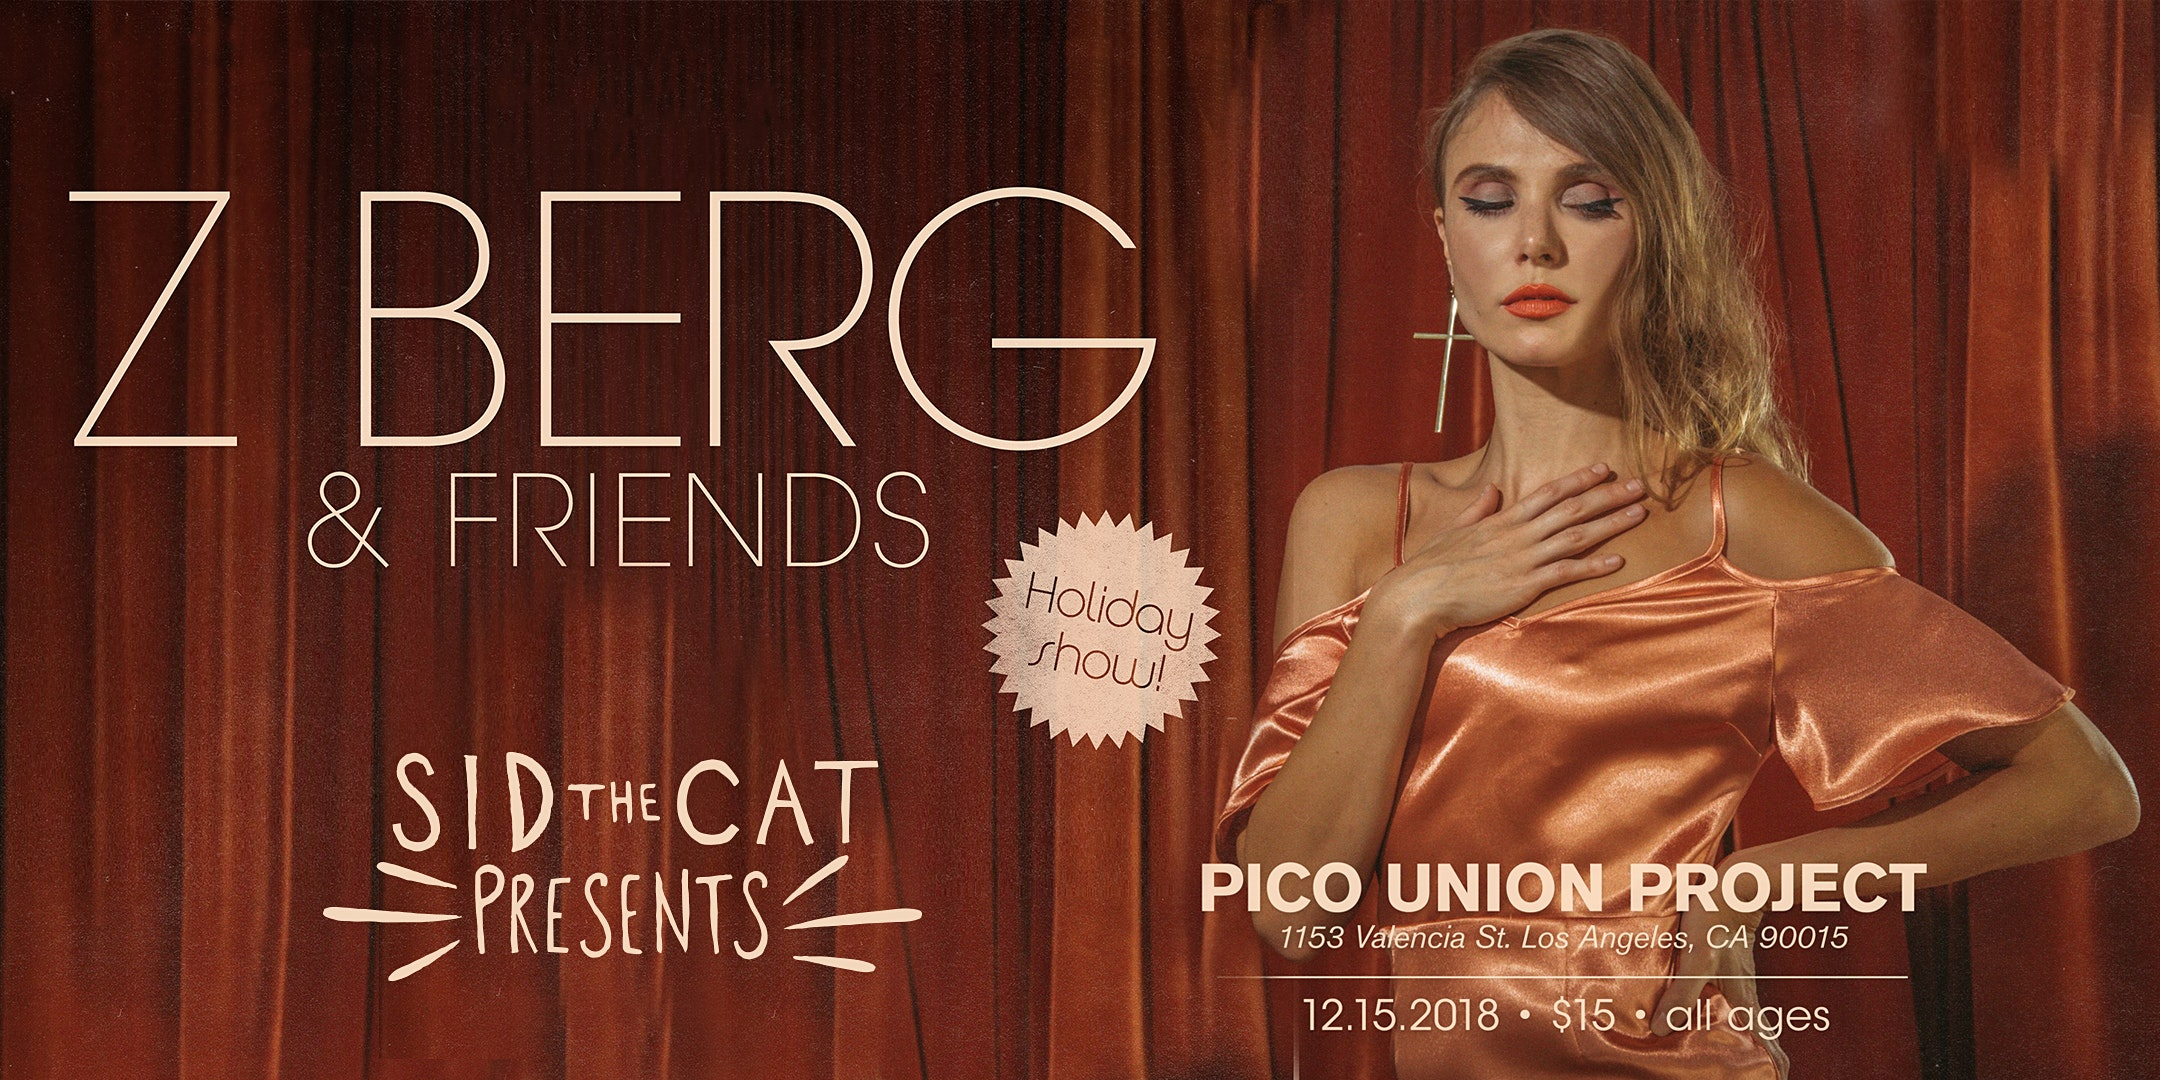 Z Berg & Friends Holiday Show